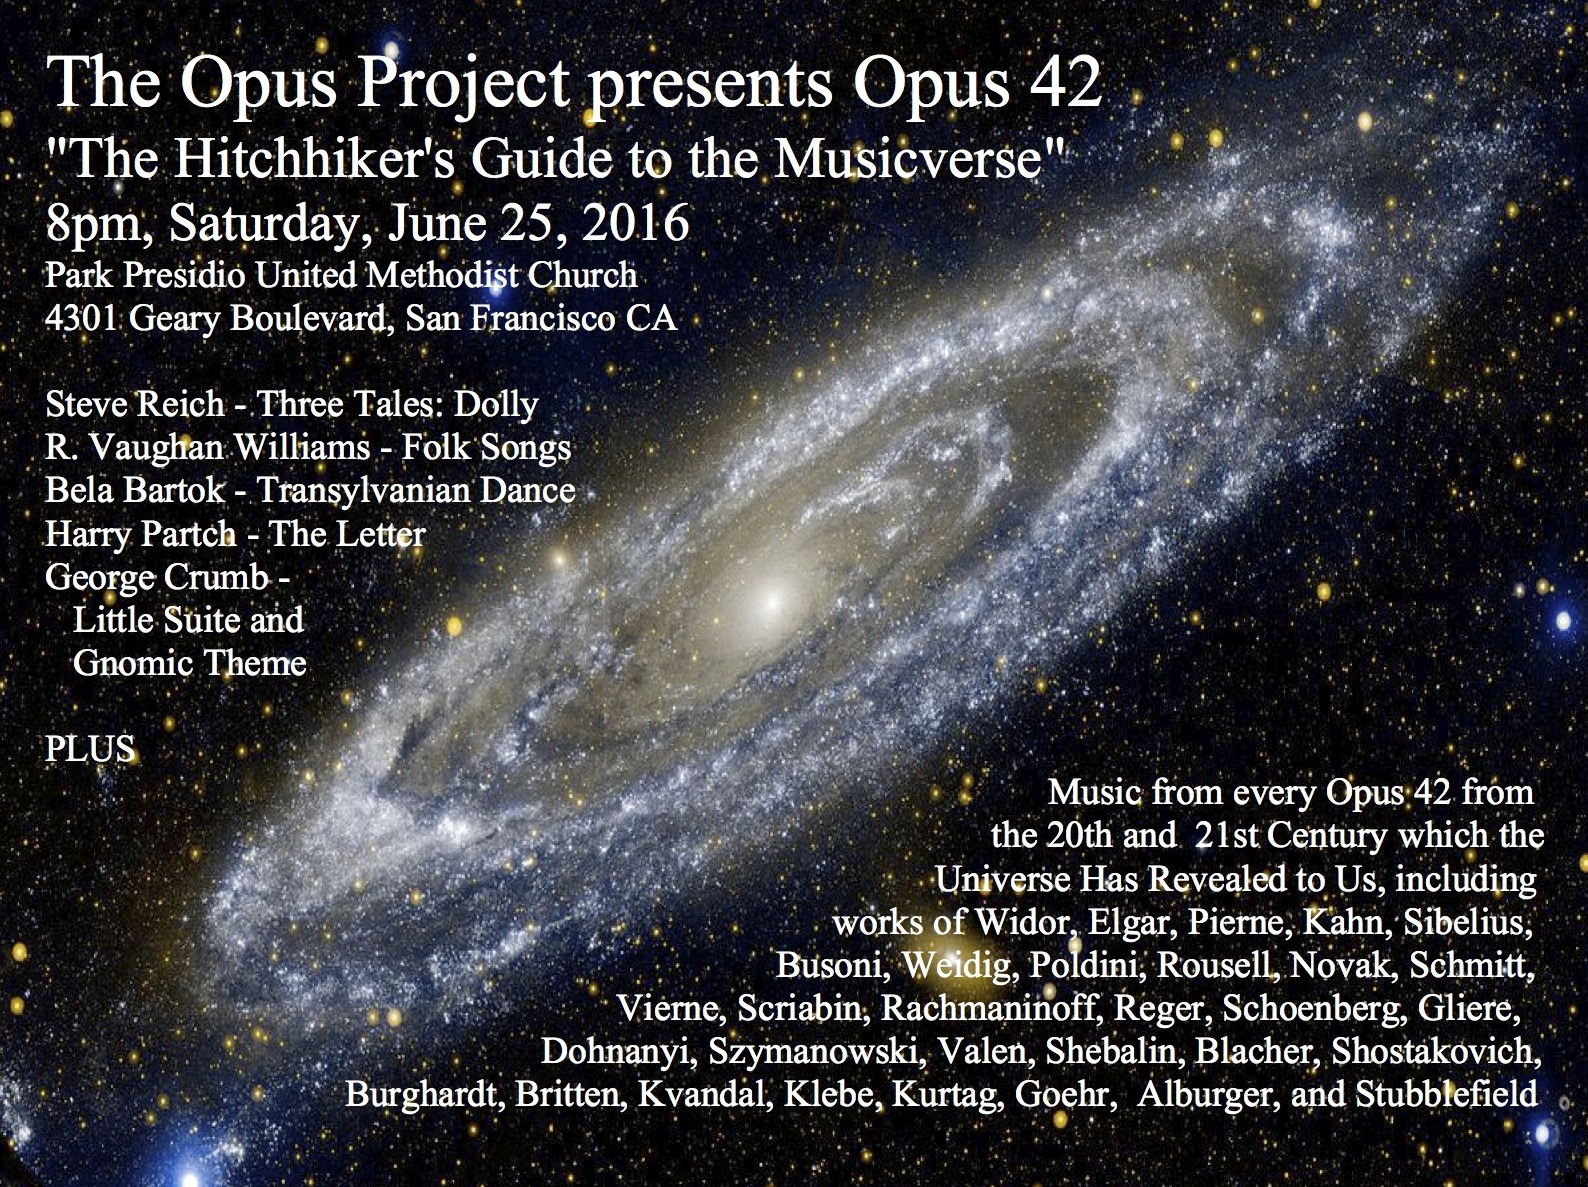 d9b1c5a0357f2 June 25 - Opus 42  The Hitchhiker s Guide to the Musicverse. THE OPUS  PROJECT